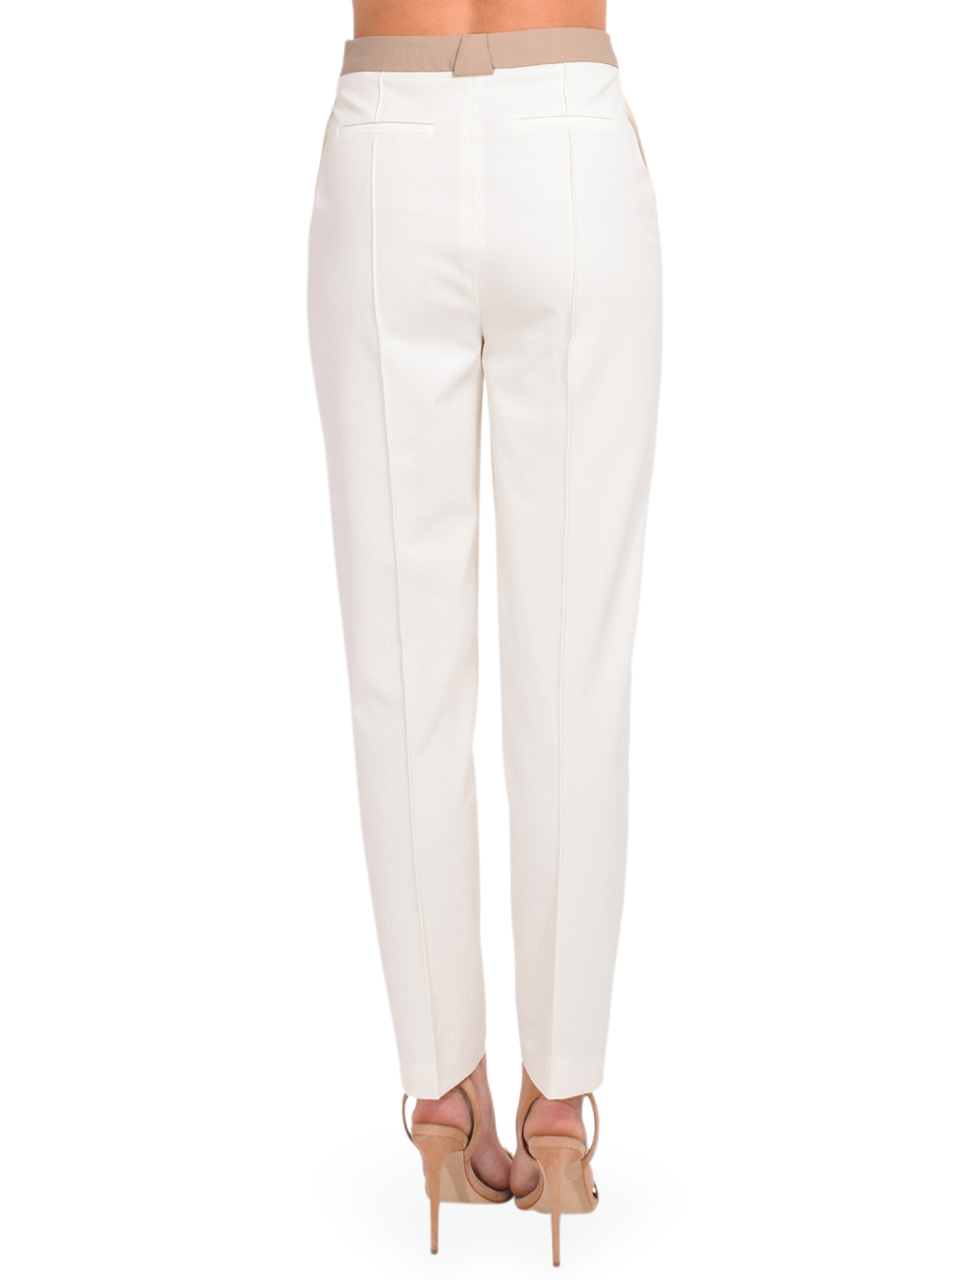 Jonathan Simkhai Spencer Double Front Waist Pant in Papyrus Tan Back View